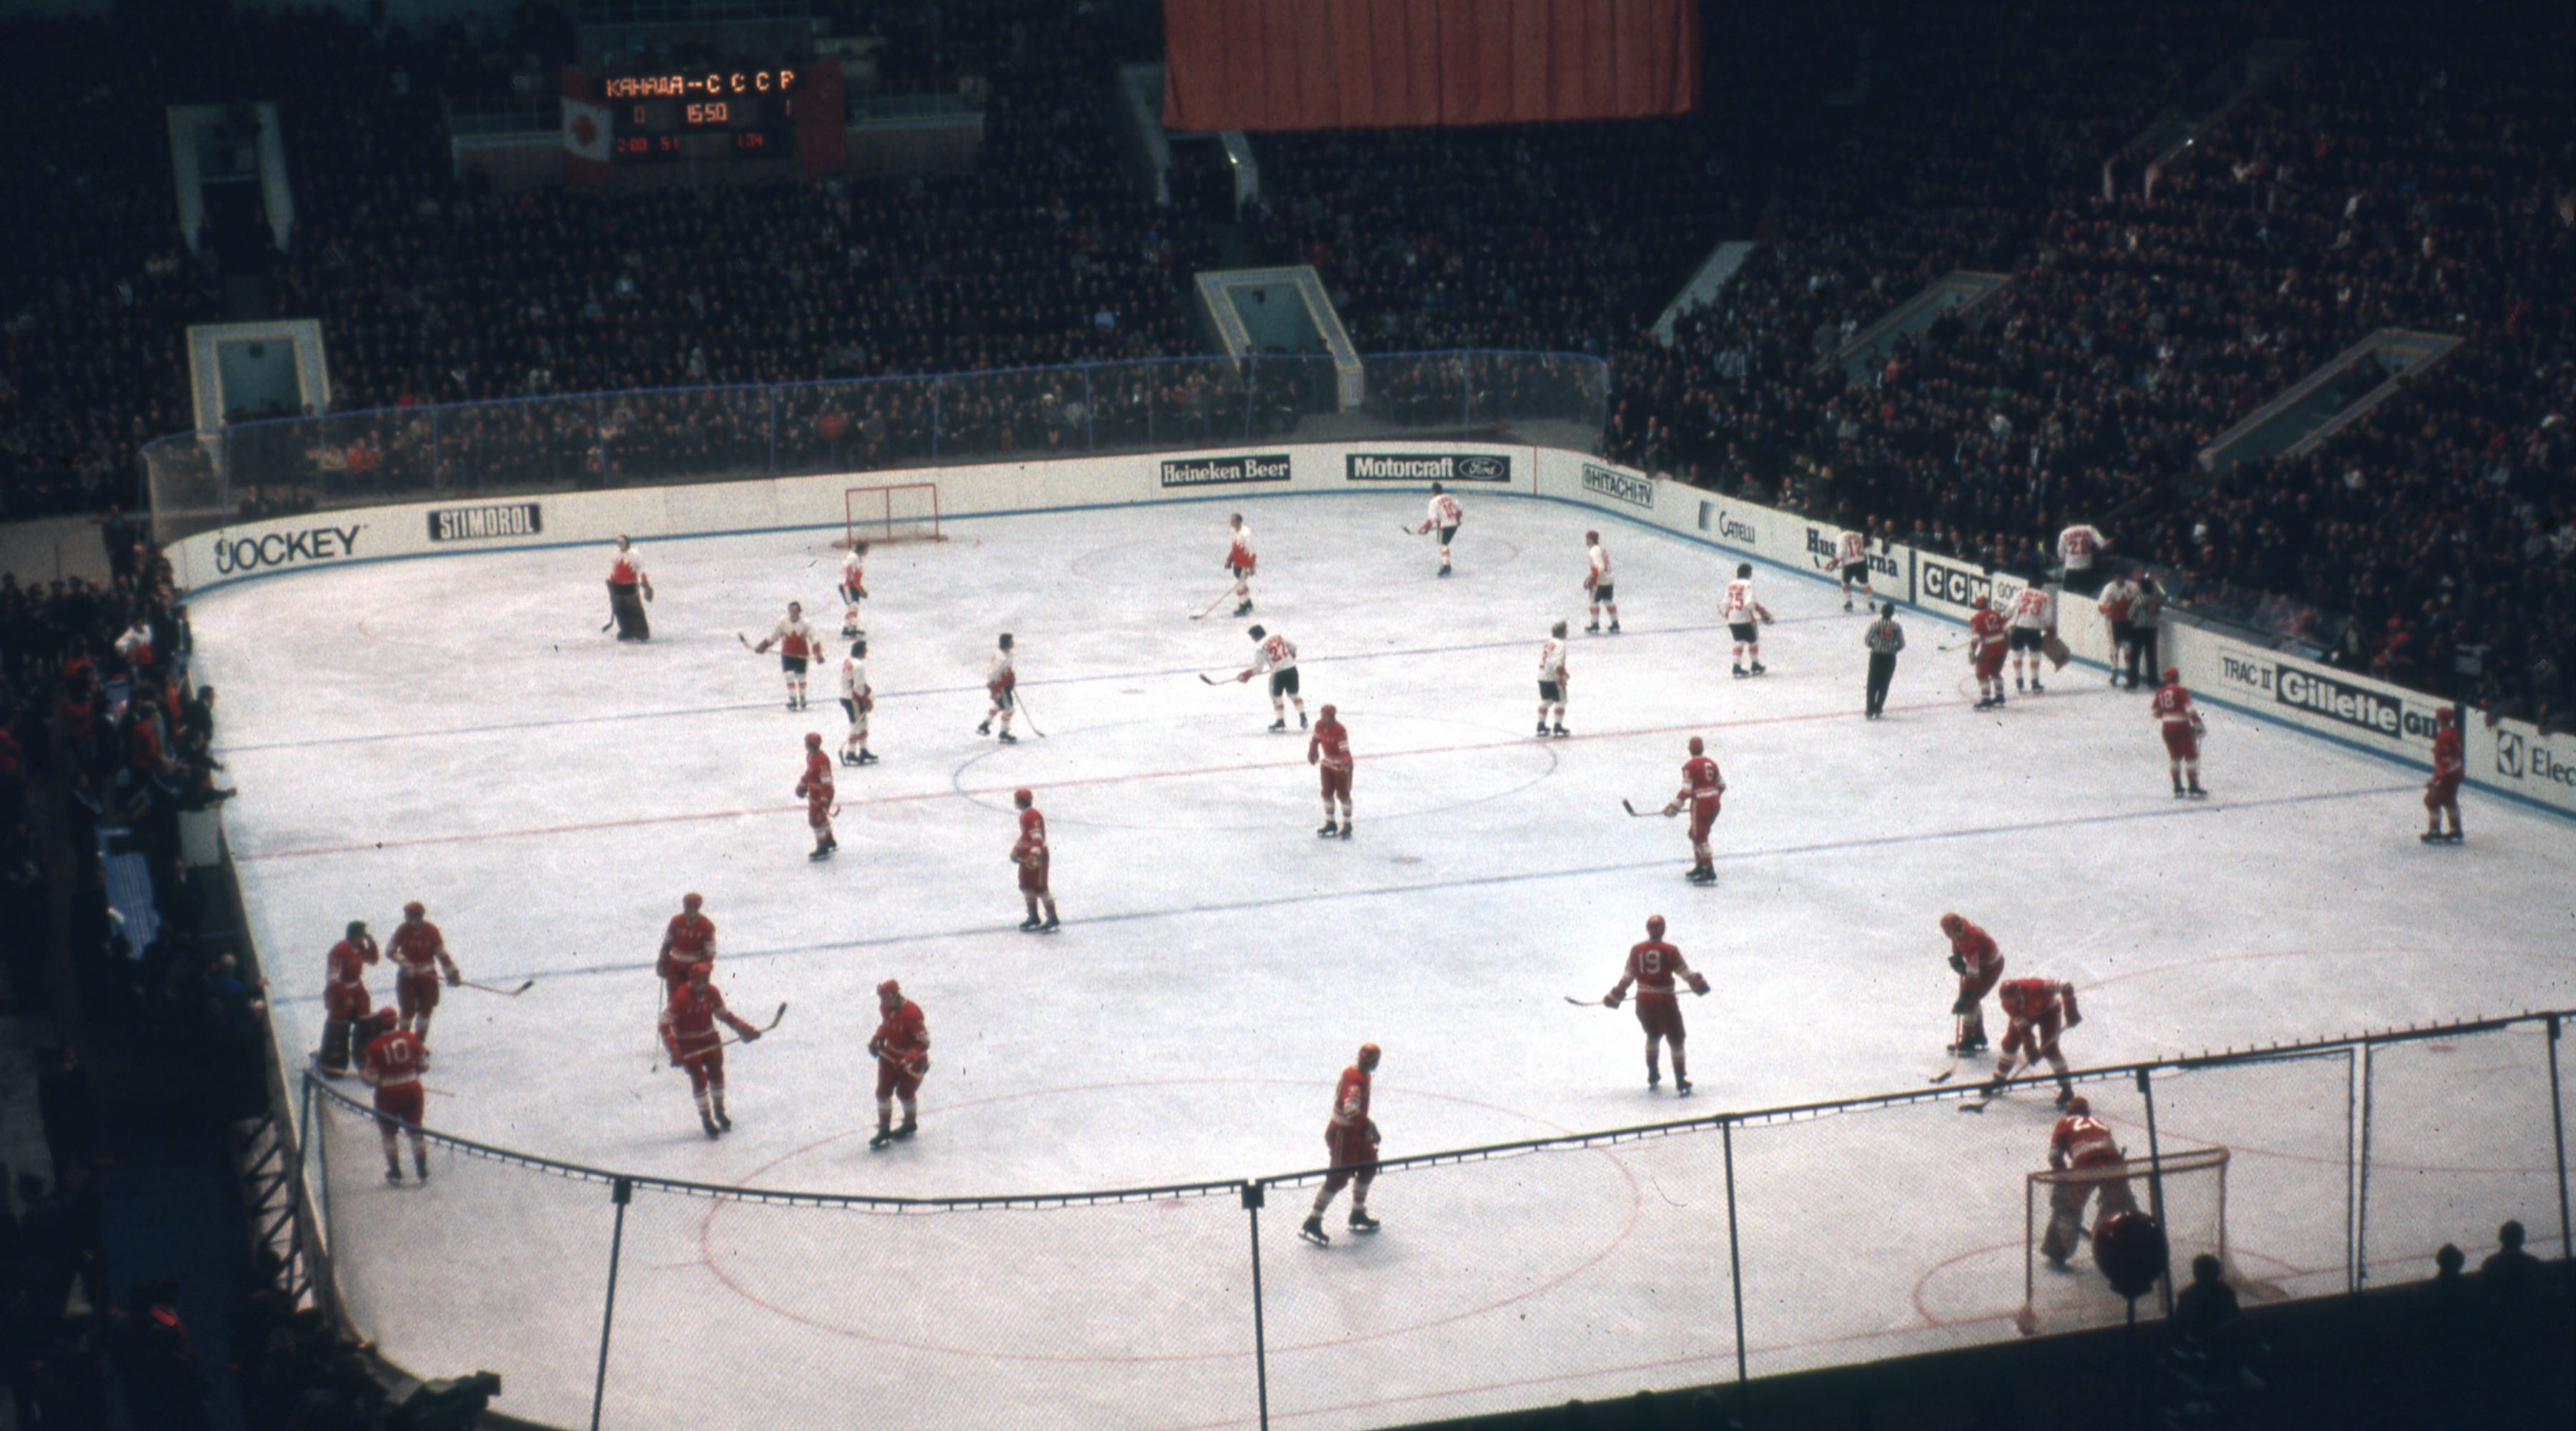 1972 Summit Series in Moscow